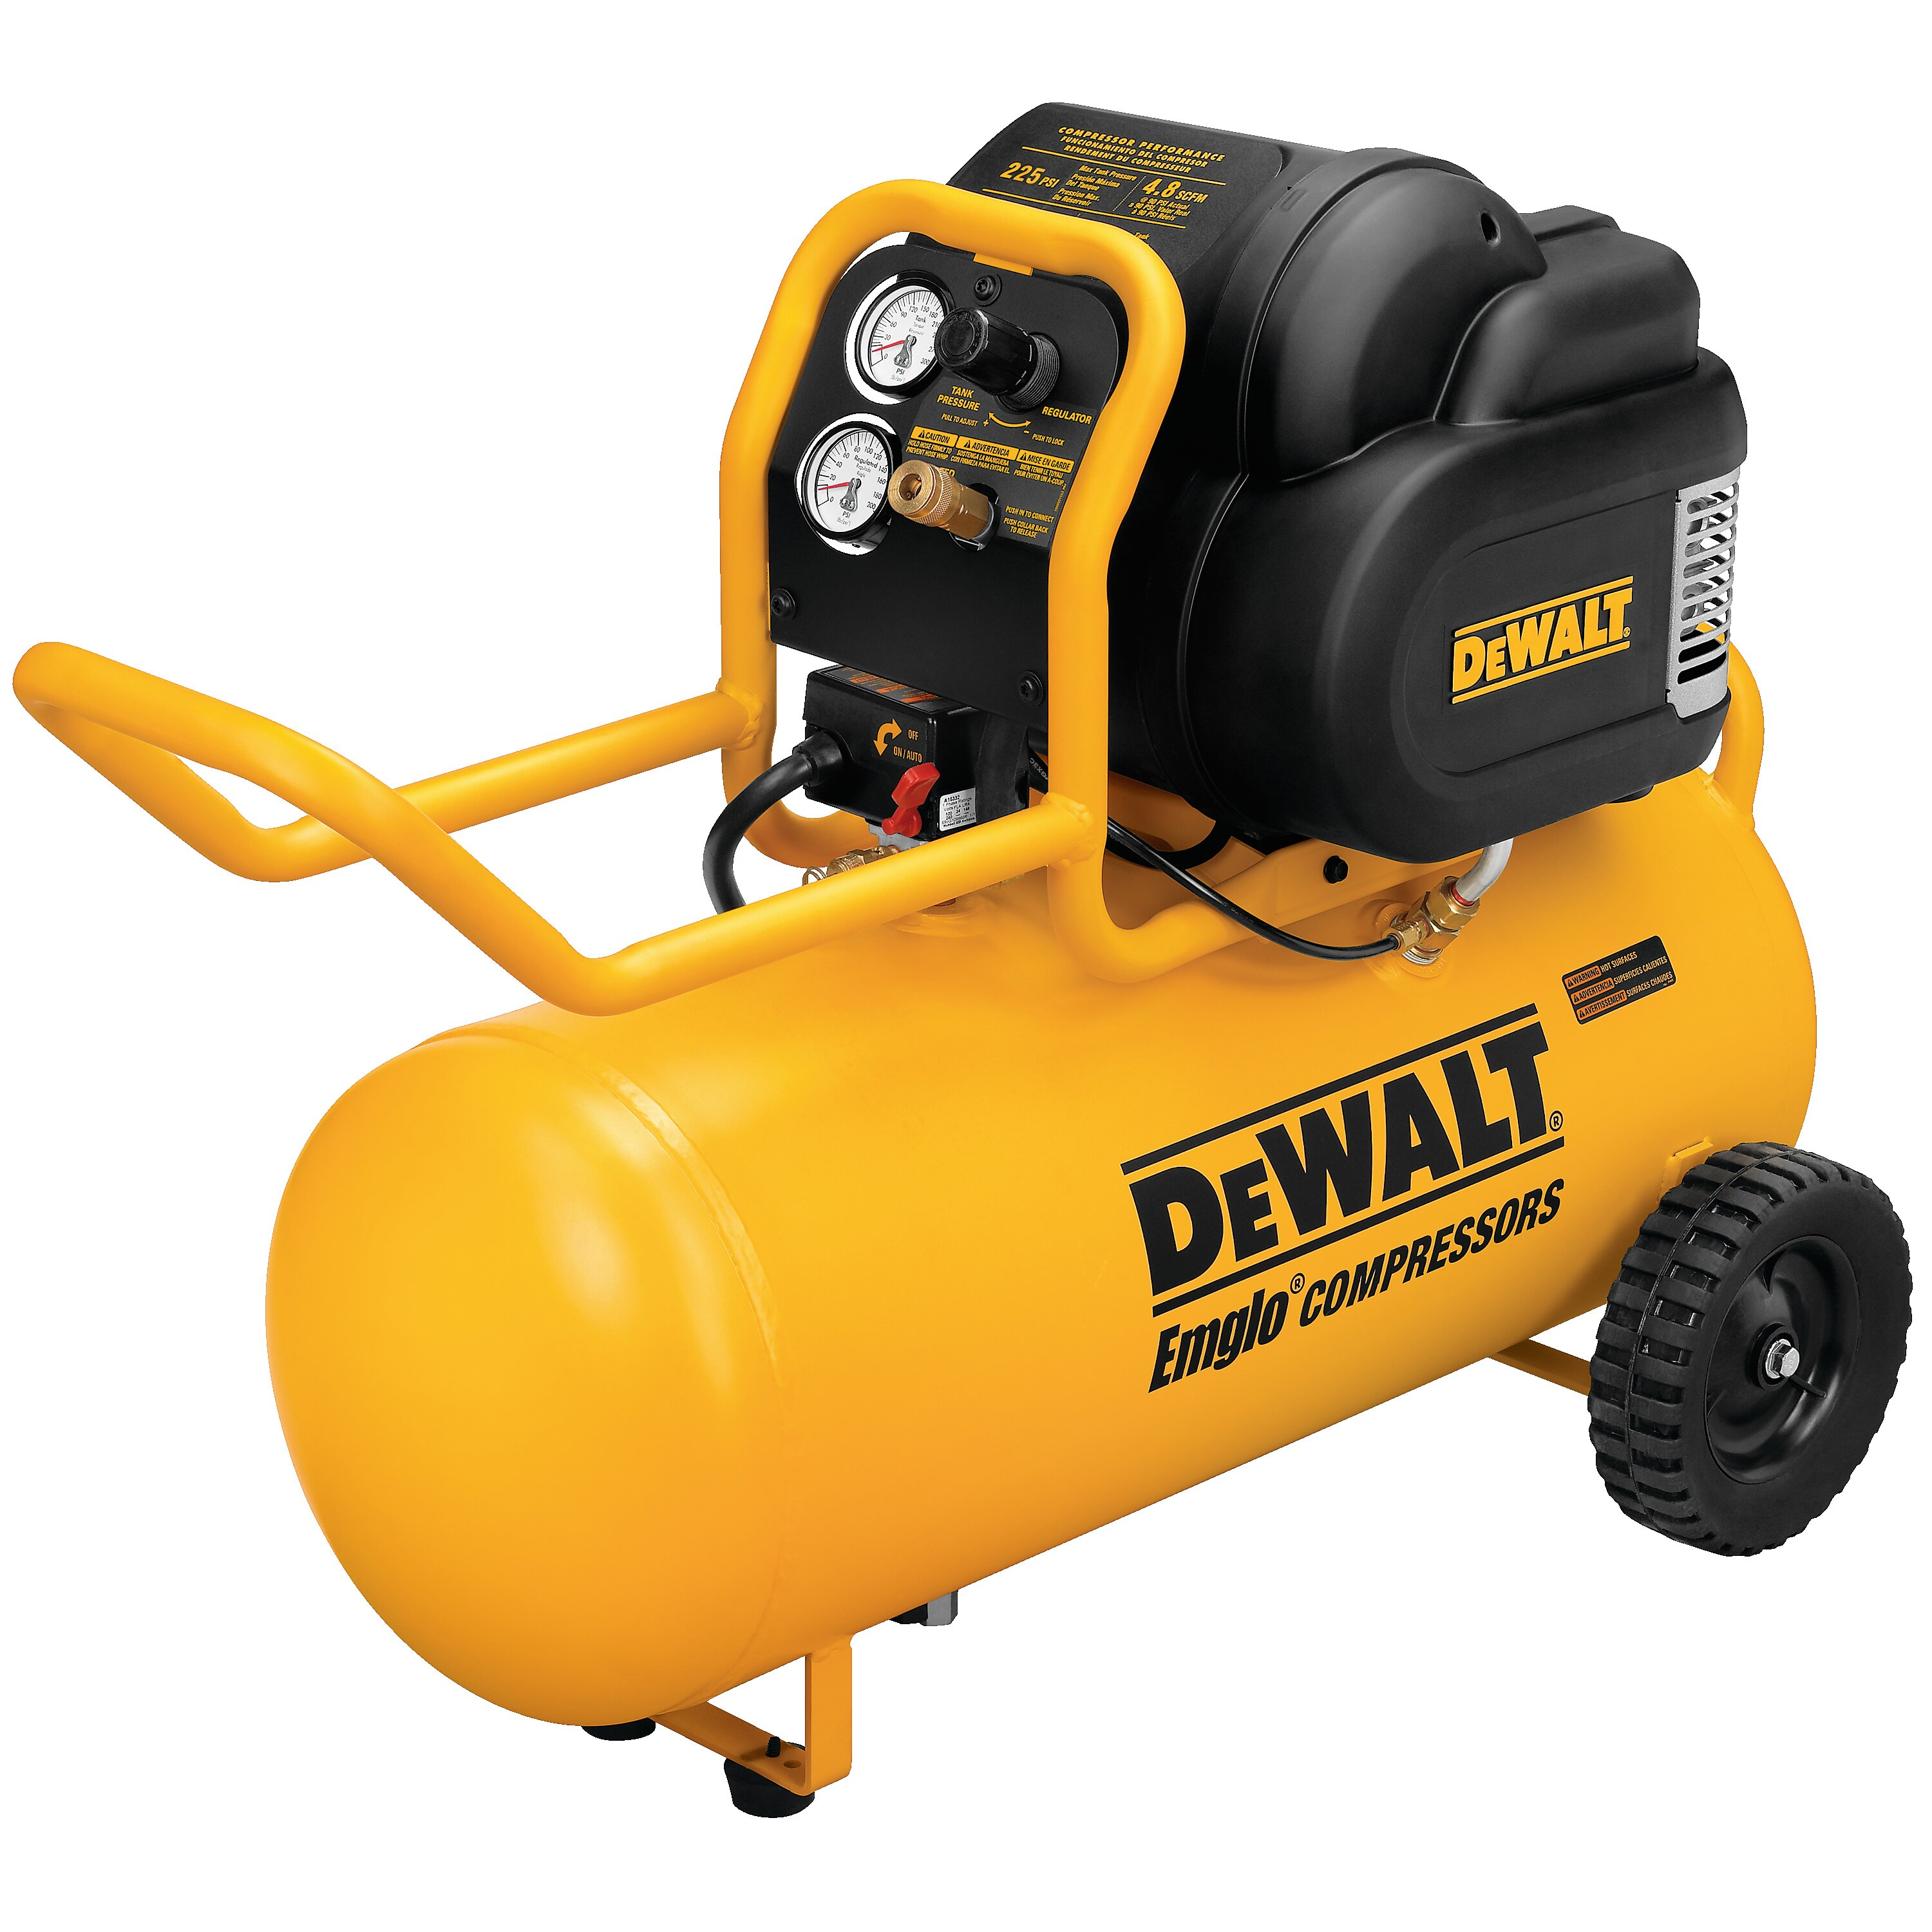 DEWALT - 16 HP Continuous 200 PSI 15 Gallon Workshop Compressor - D55167